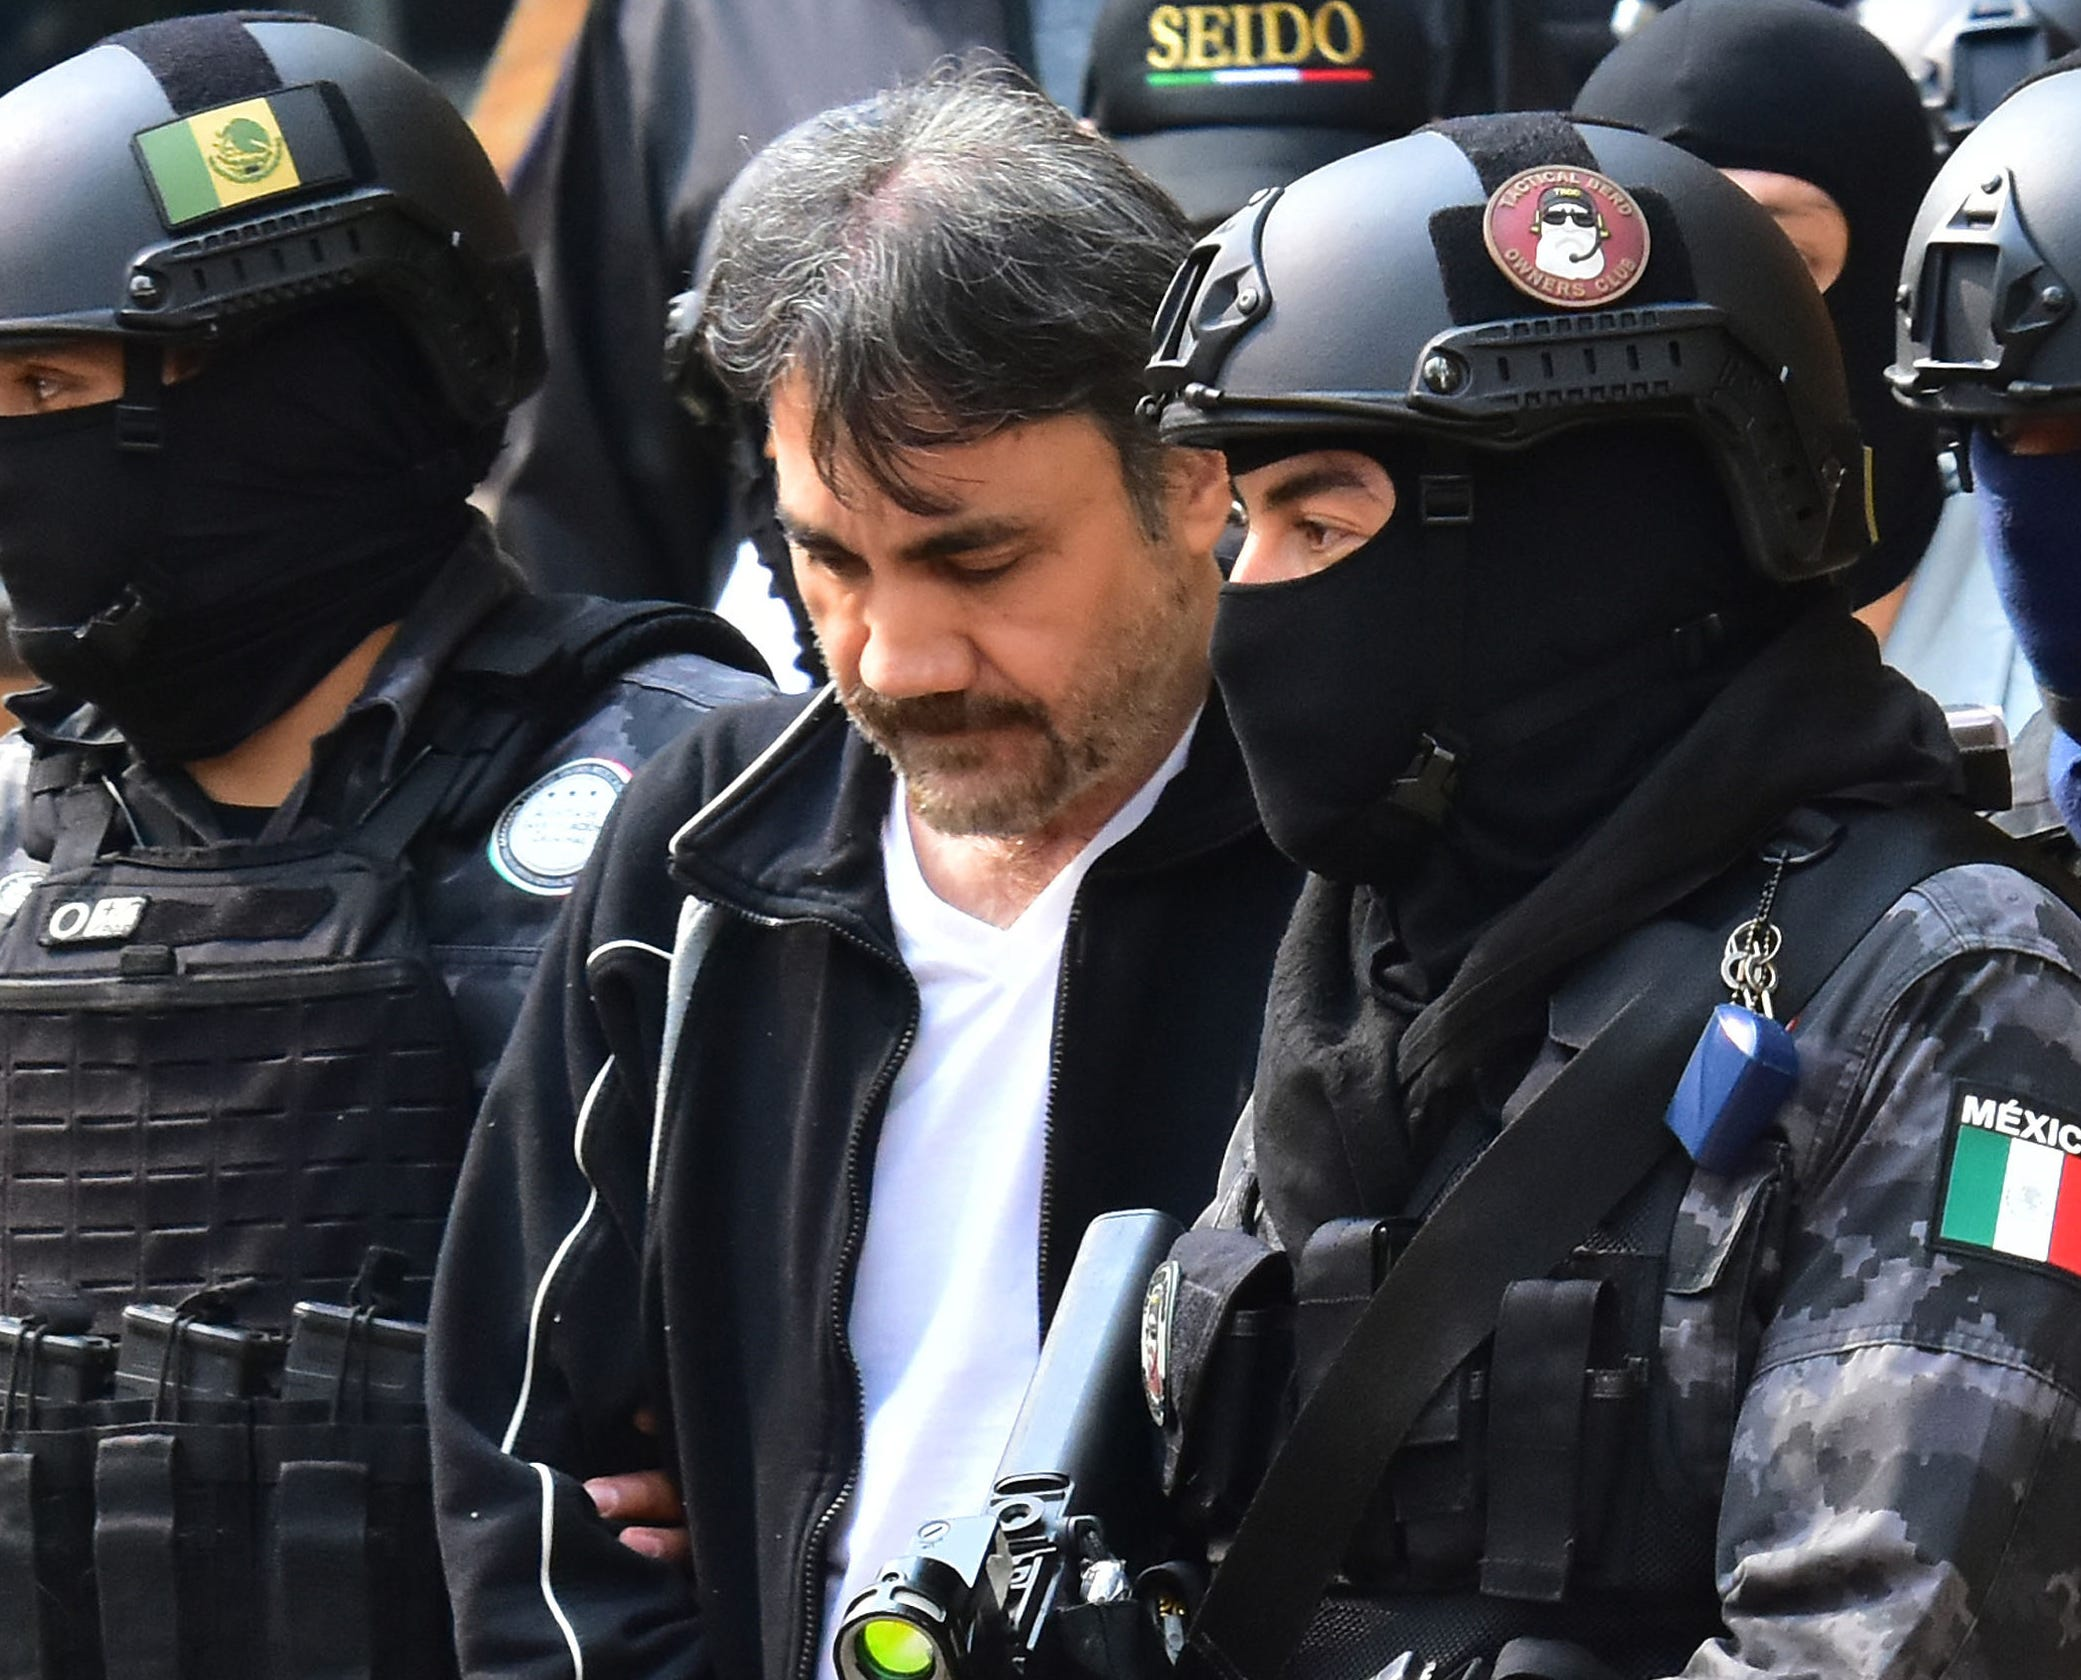 """Agents of the Criminal Investigation Agency and soldiers of the Mexican army escort senior lieutenant of US jailed drug lord, Joaquin """"Chapo"""" Guzman, Damaso Lopez (C) after arresting him, in Mexico City on May 2, 2017.   Mexico announced the arrest of a senior lieutenant of the jailed Joaquin """"Chapo"""" Guzman who was allegedly engaged in a bloody struggle to lead the Sinaloa crime syndicate."""